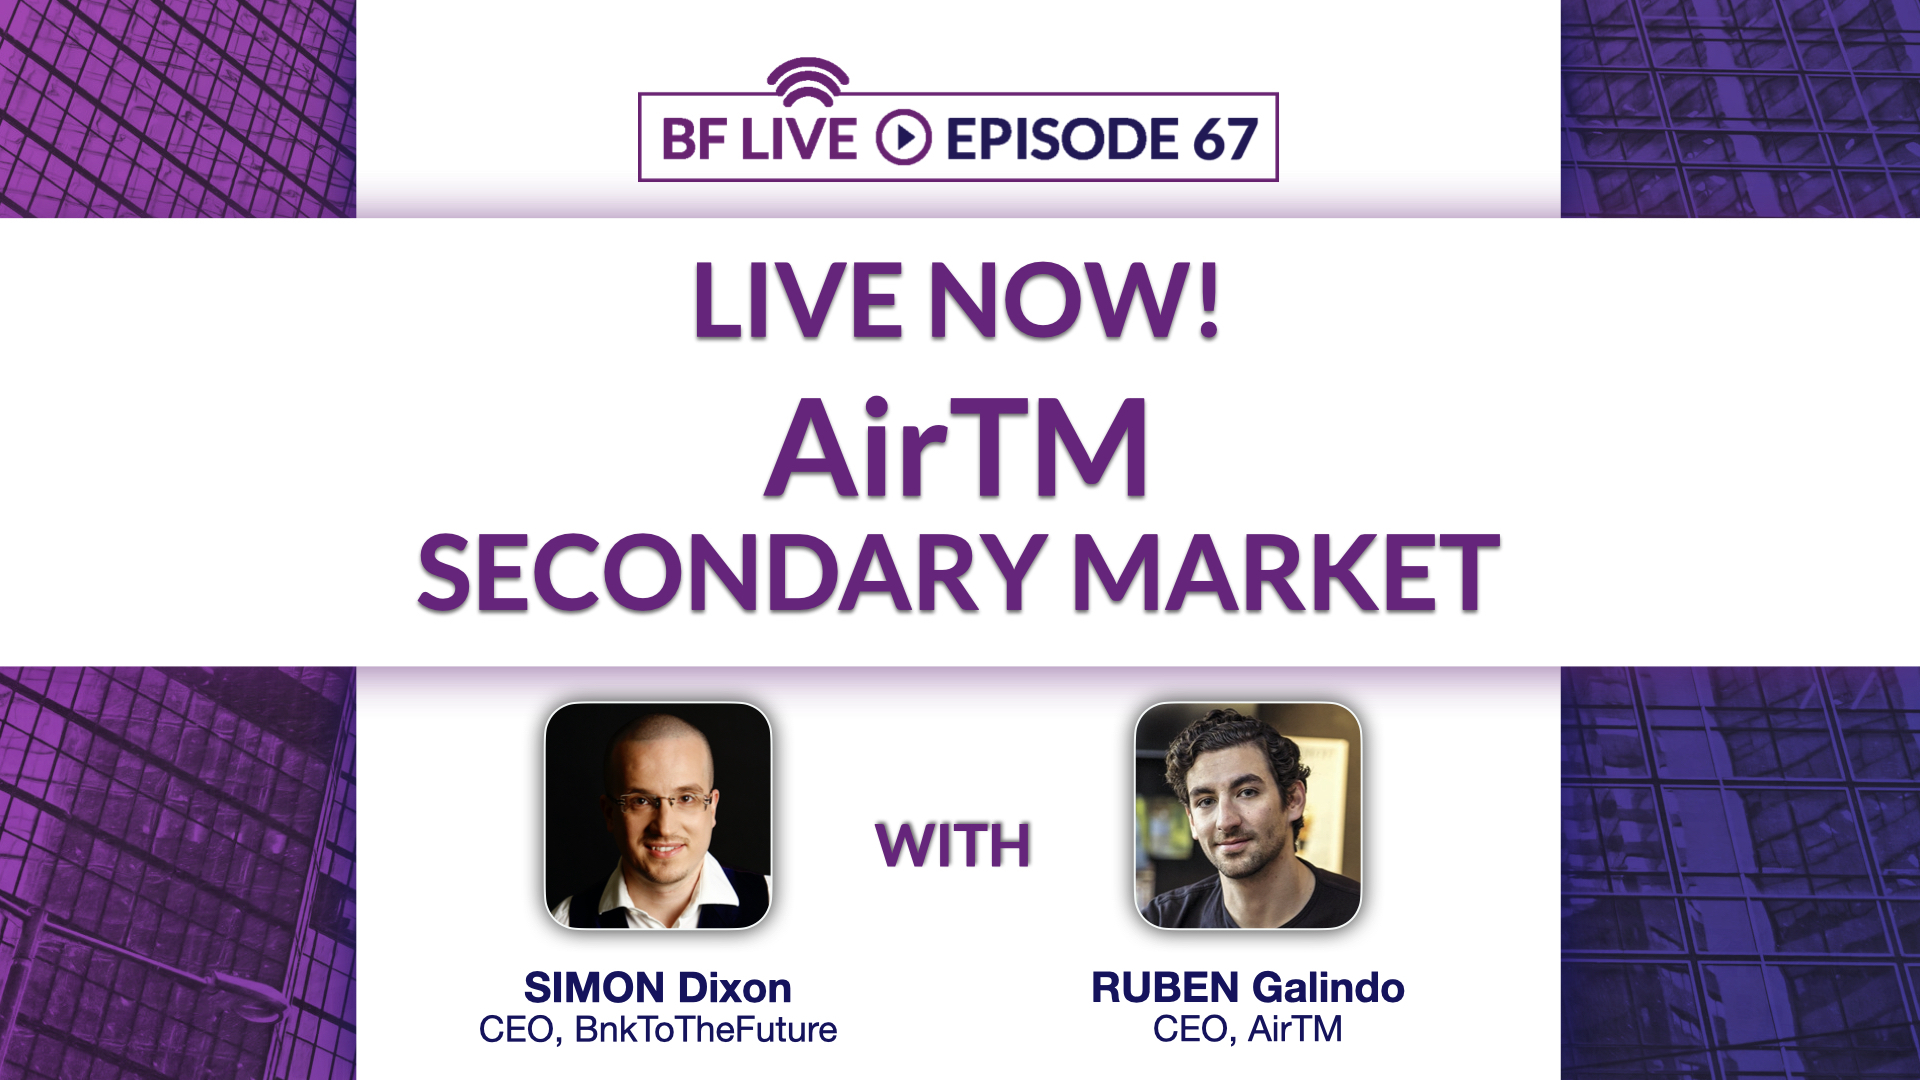 Live Now! AirTM Secondary Market with Ruben Galindo & Simon Dixon | BnkToTheFuture (BF)Live Ep. 67